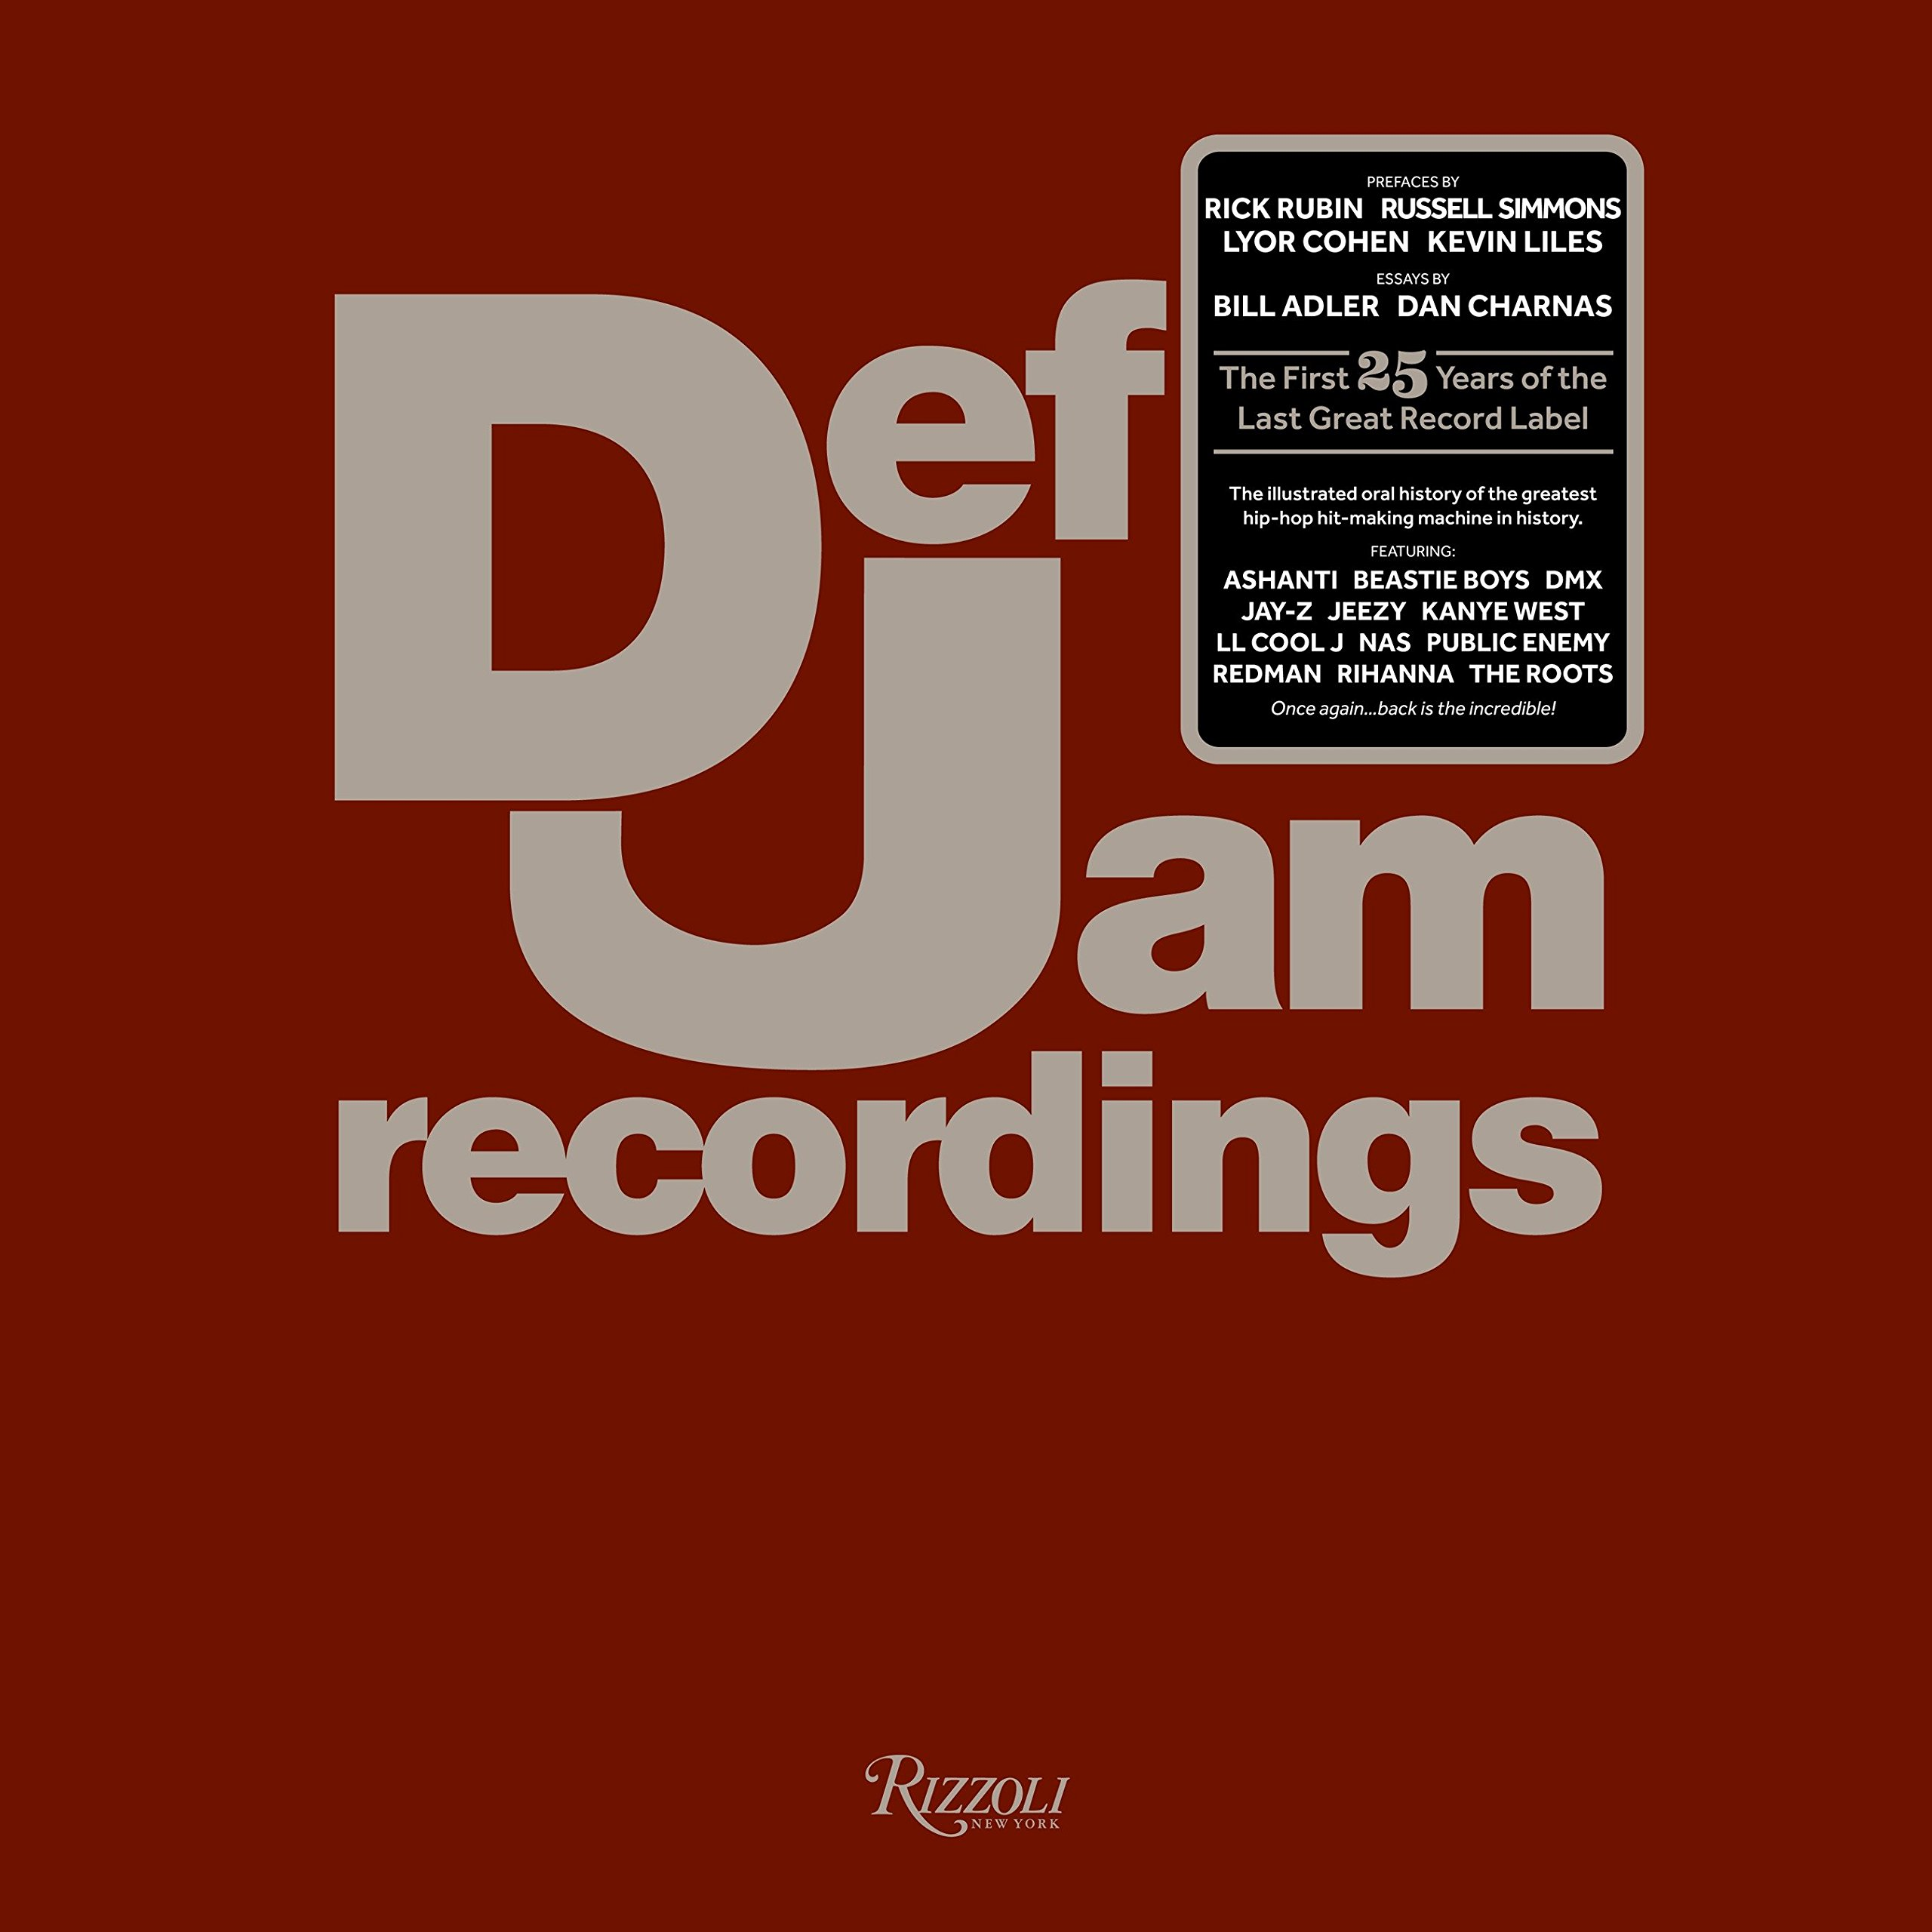 Def Jam Recordings: The First 25 Years of the Last Great Record Label: Amazon.es: Def Jam Recordings, Adler, Bill: Libros en idiomas extranjeros